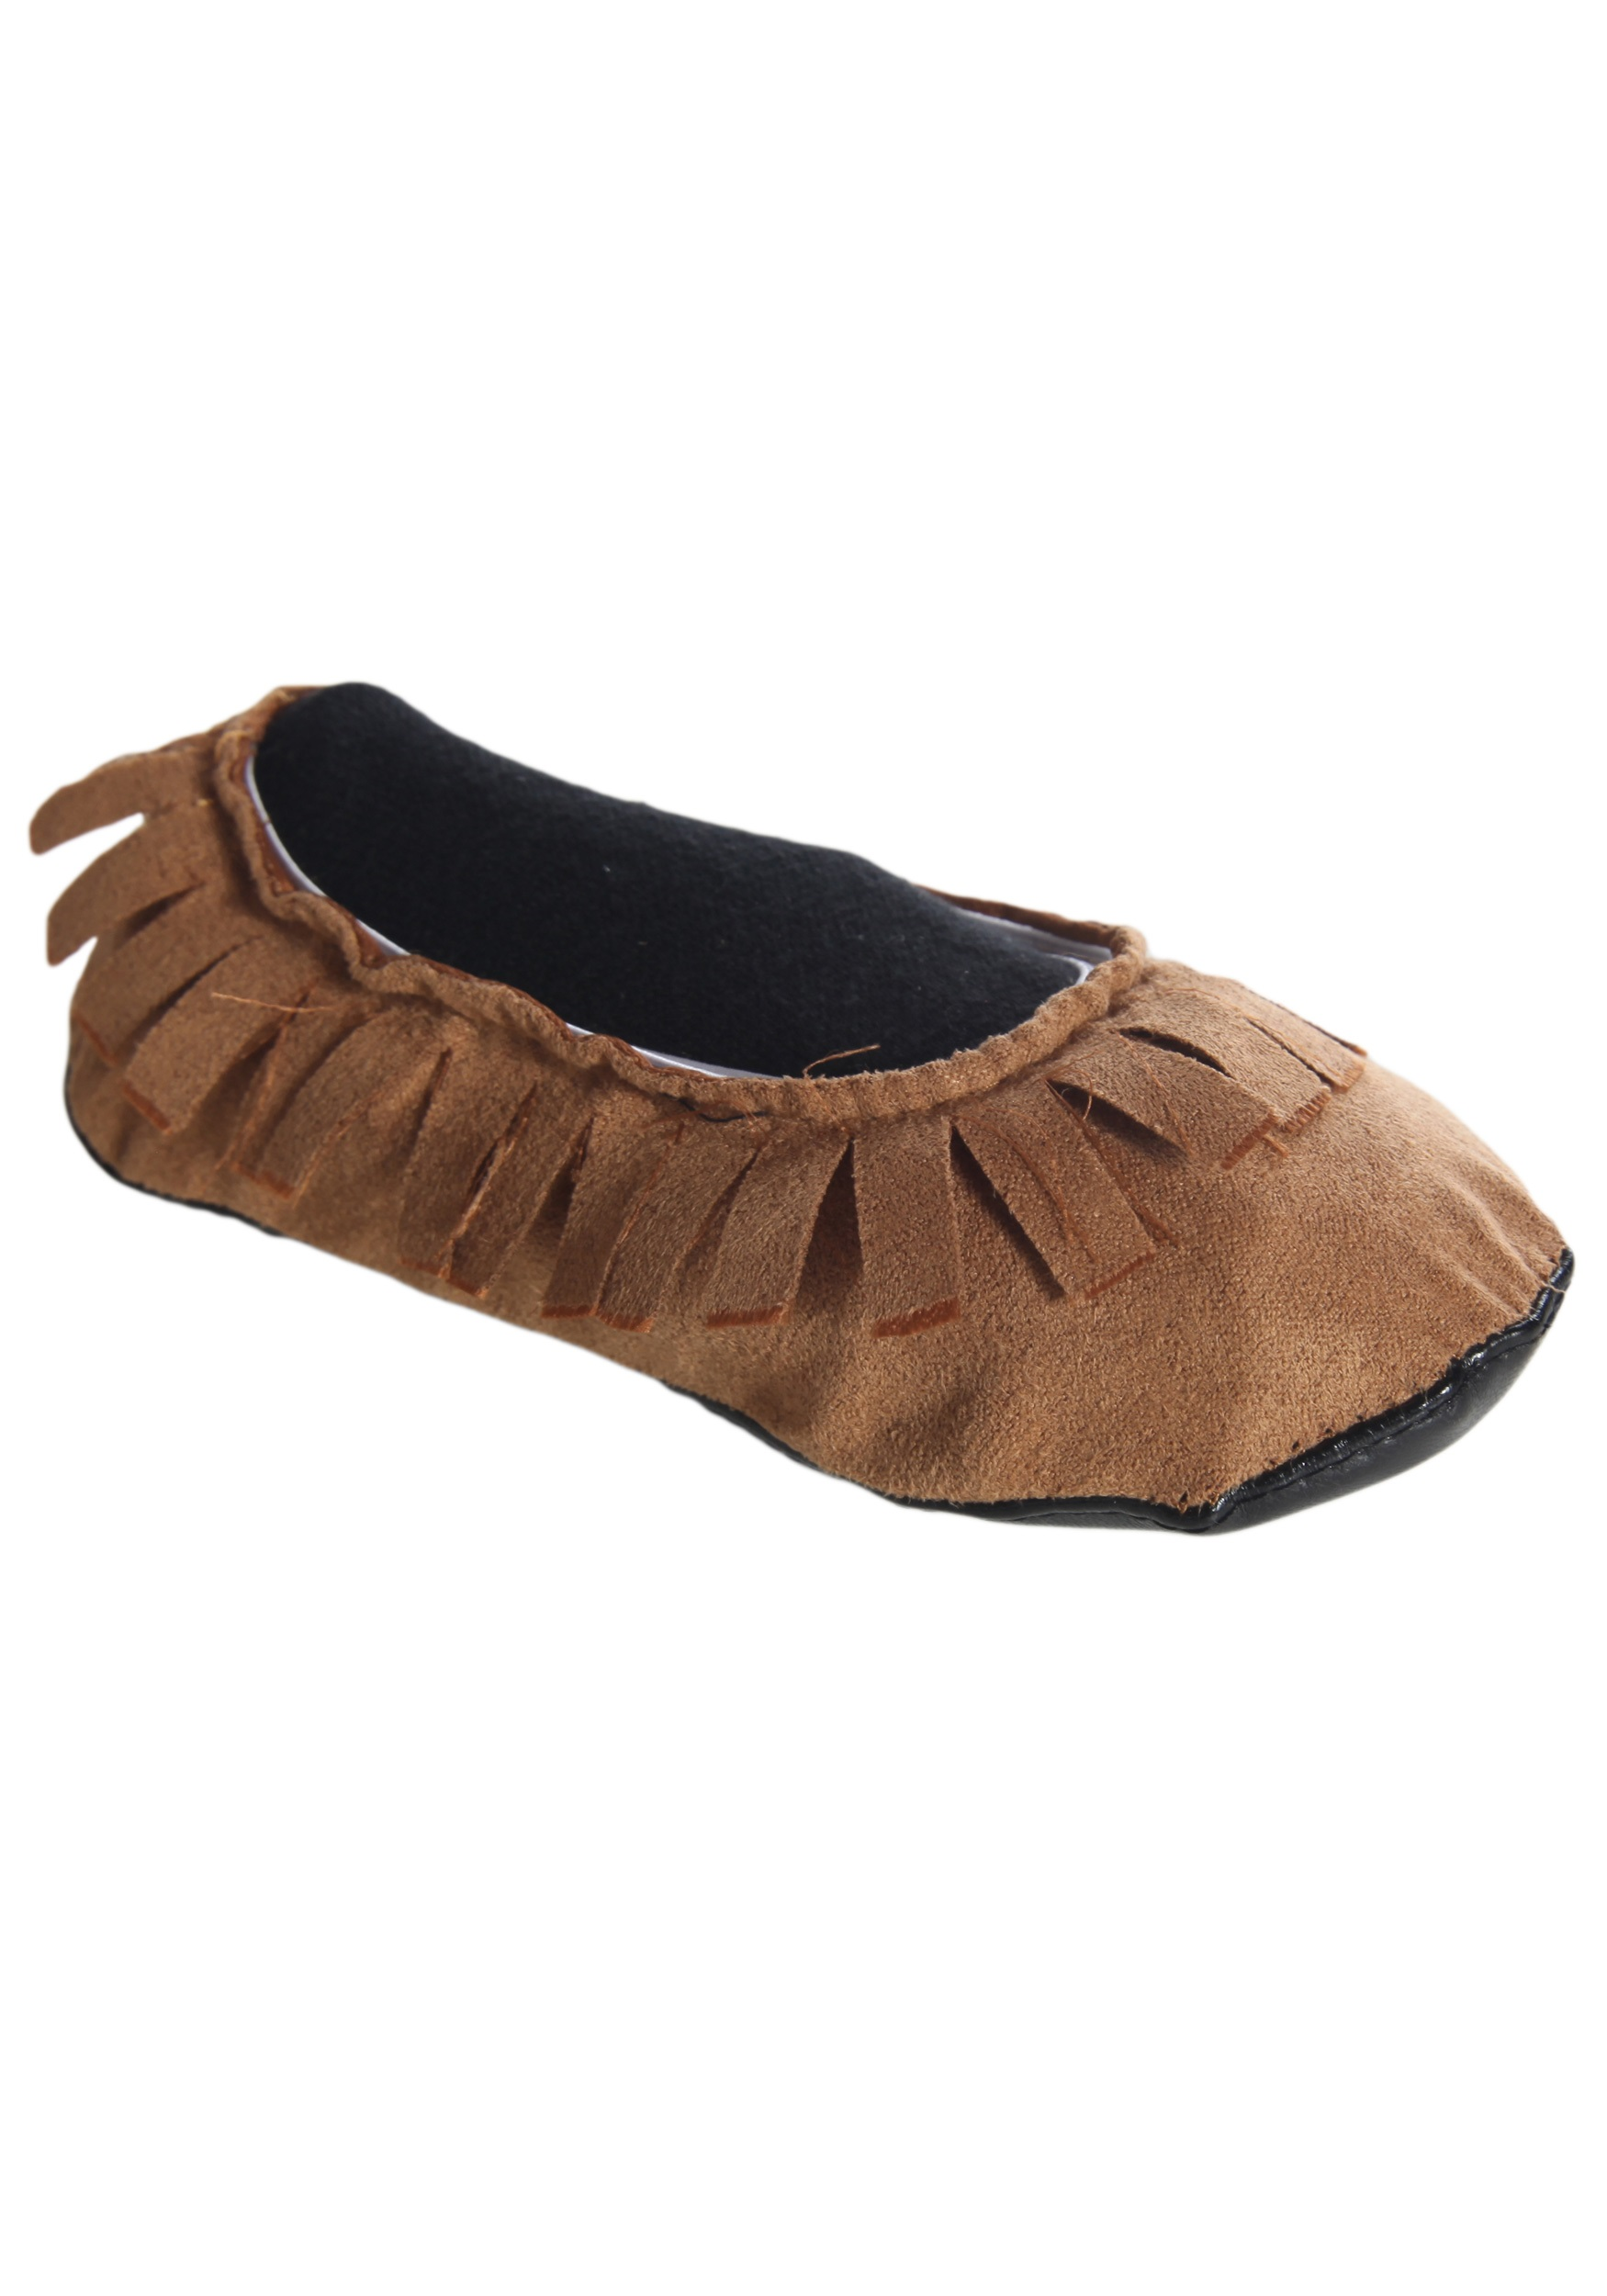 Lastest New Fashion Nude Indian Women Sandals  Buy Nude Indian Women Sandals